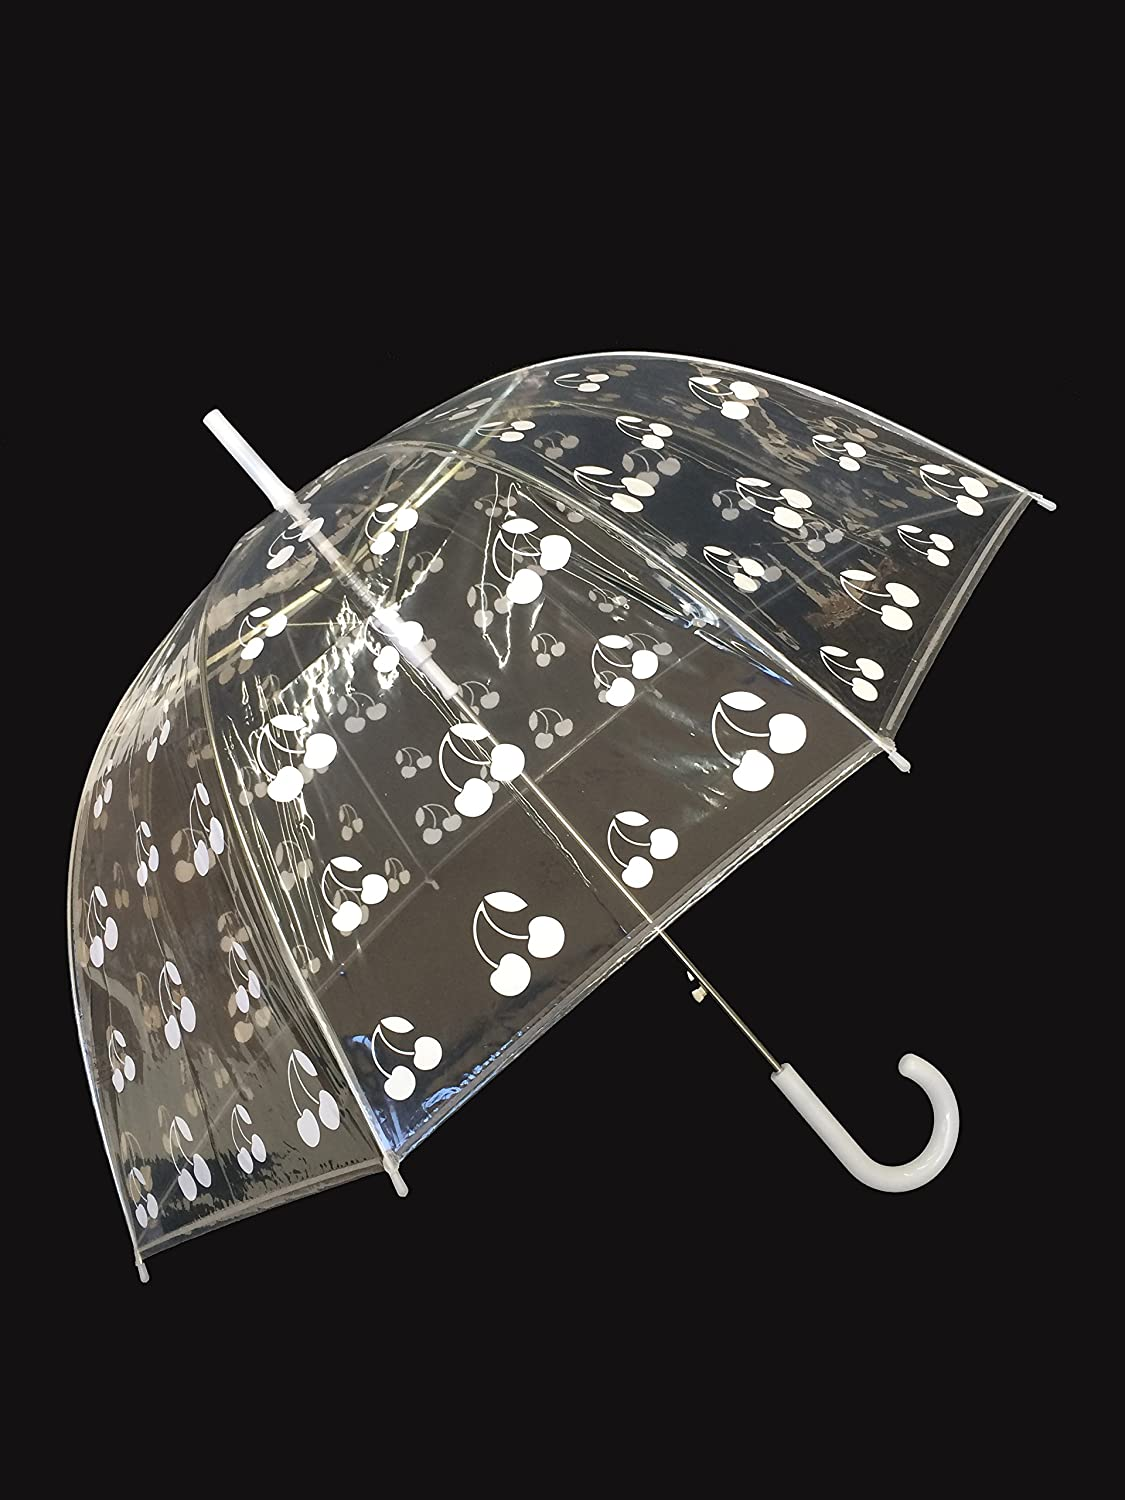 Amazon.com: SMATI Stick Birdcage Clear Umbrella Dome Transparent - Automatic Open(Cherry White): Sports & Outdoors